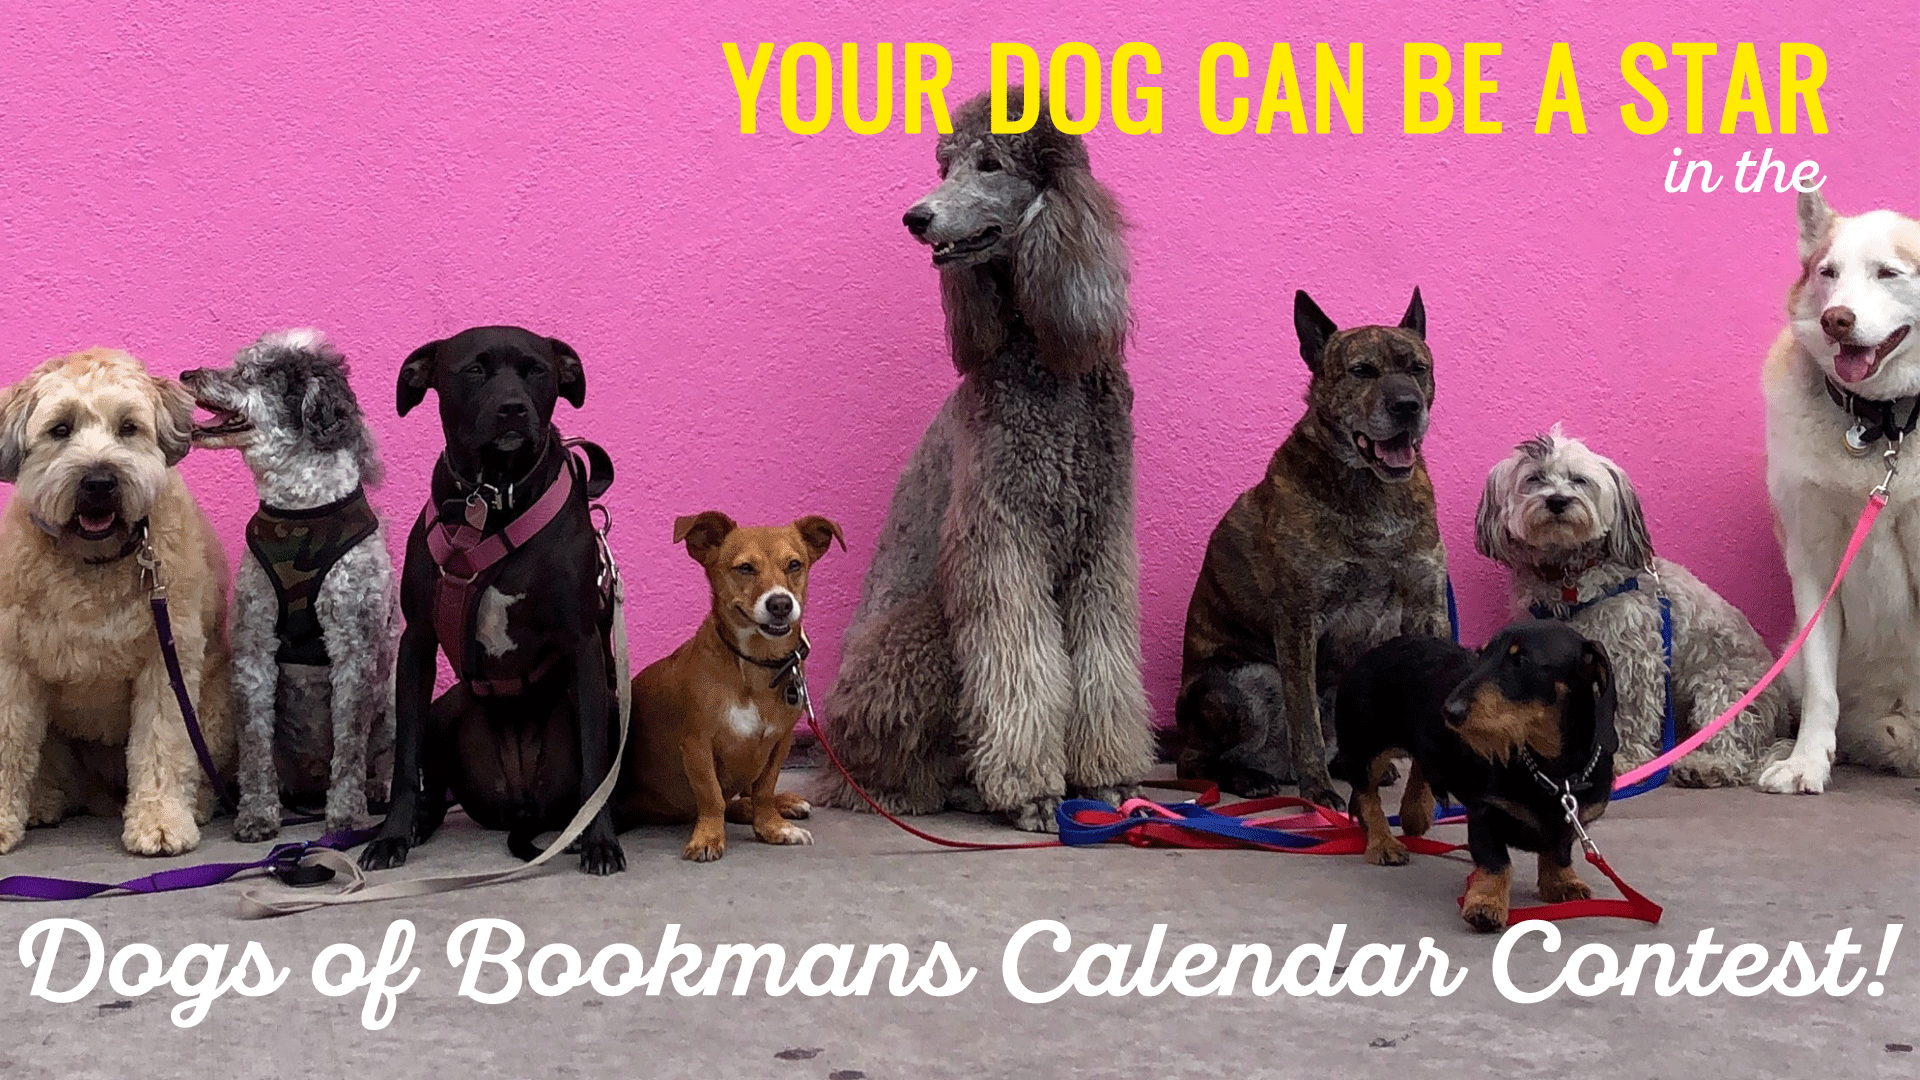 Barktober Dogs of Bookmans Calendar Contest all types of dogs against a pink wall